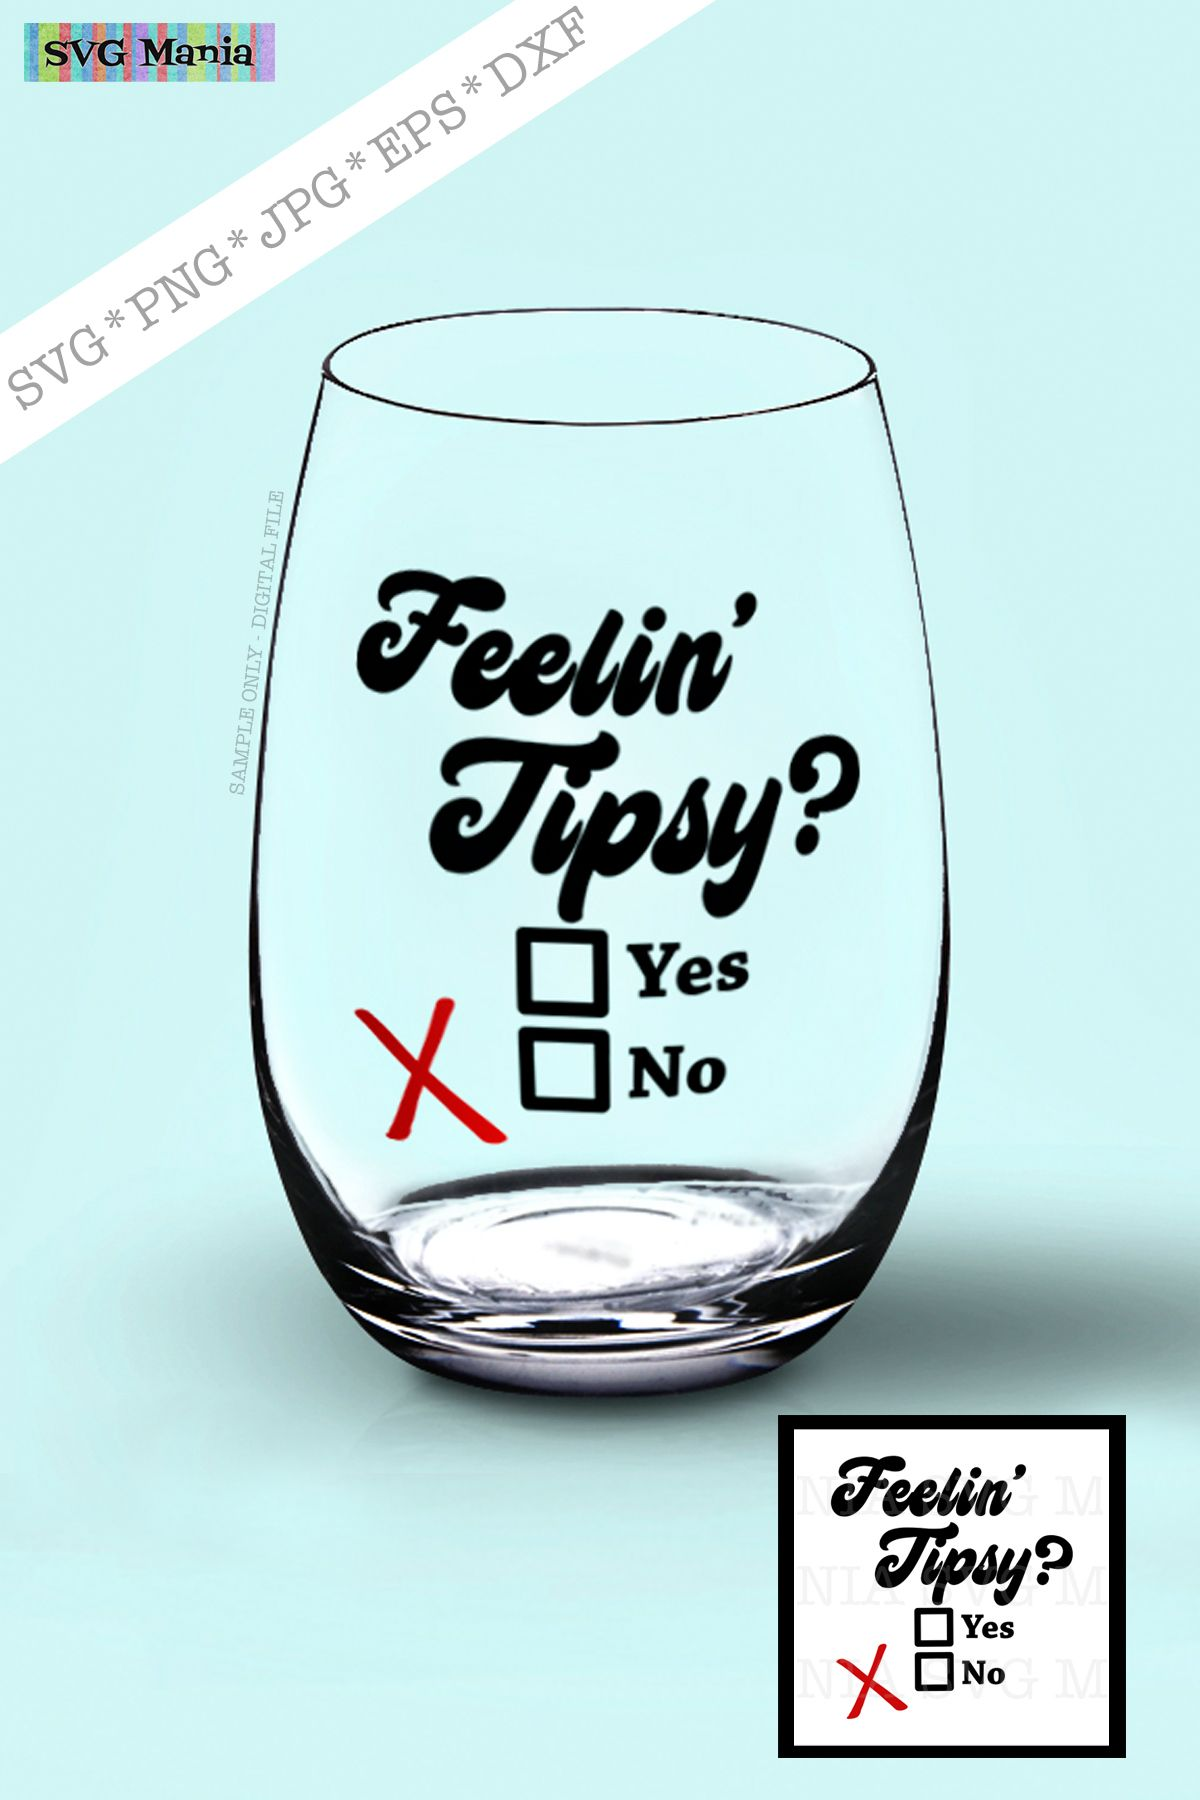 SVG Funny Wine Glass Saying, Wine Glass Decal SVG File